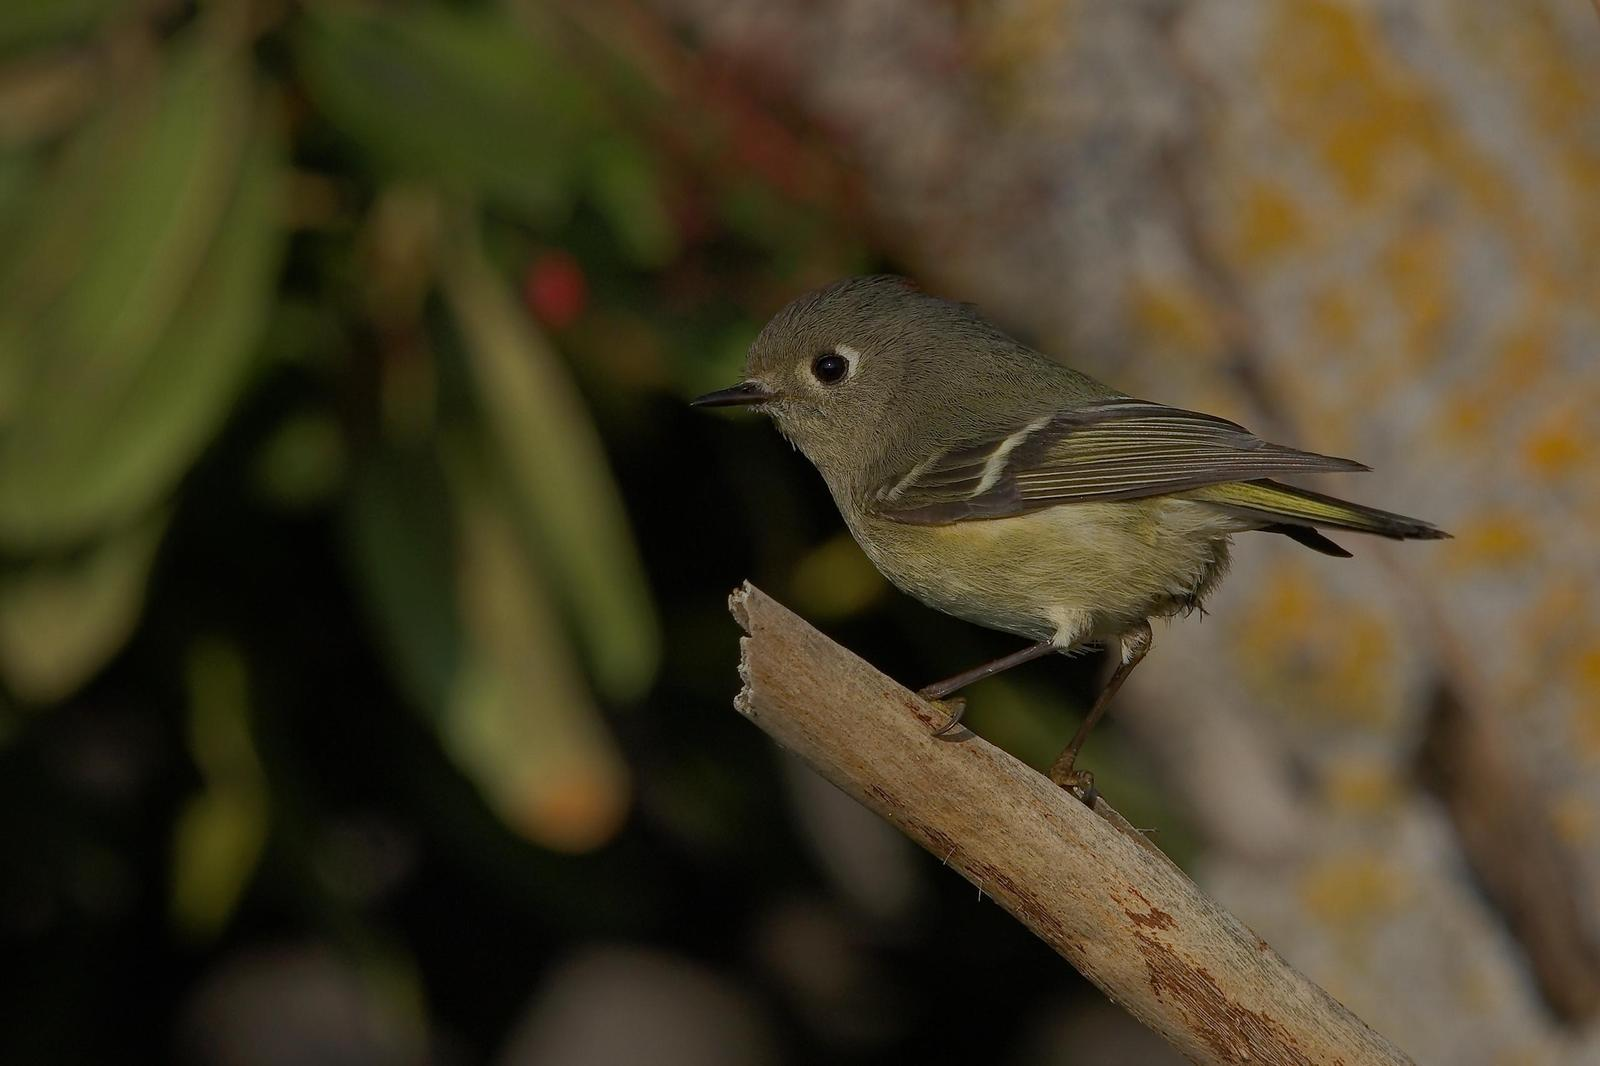 Ruby-crowned Kinglet Photo by Digibirdtrek CA